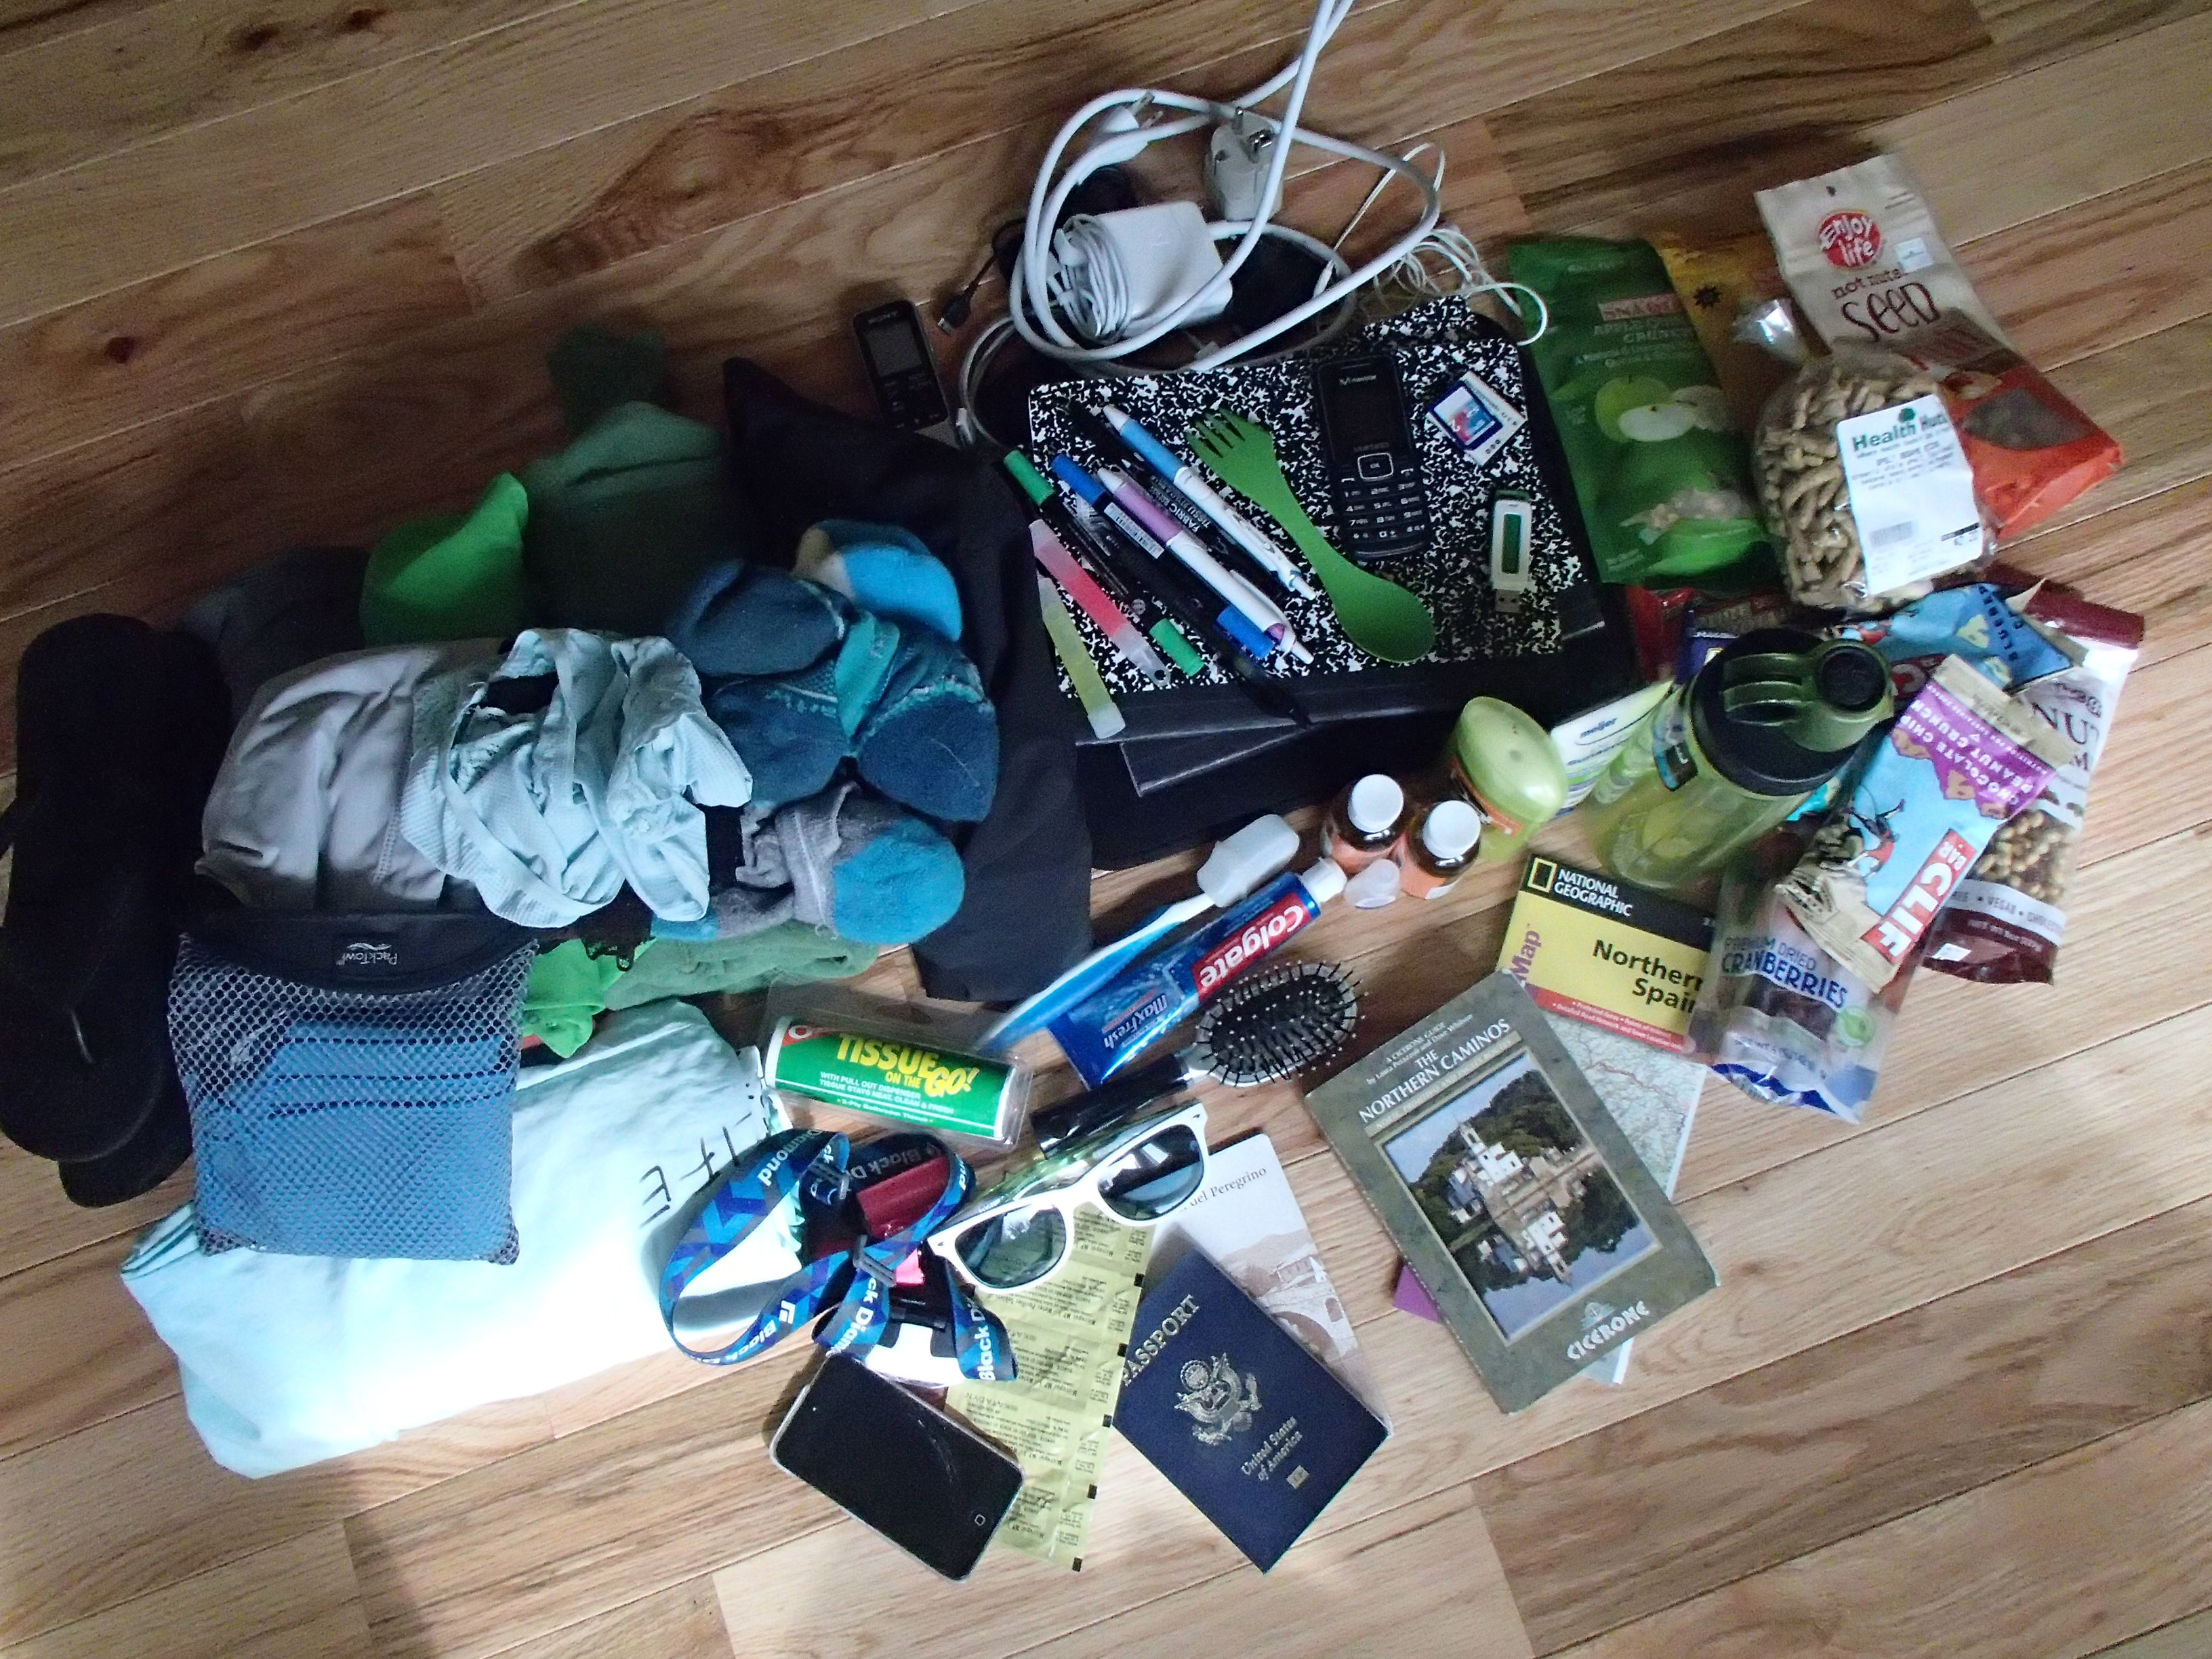 Camino Santiago Packing List Departing For Spain And El Camino De Santiago Tomorrow